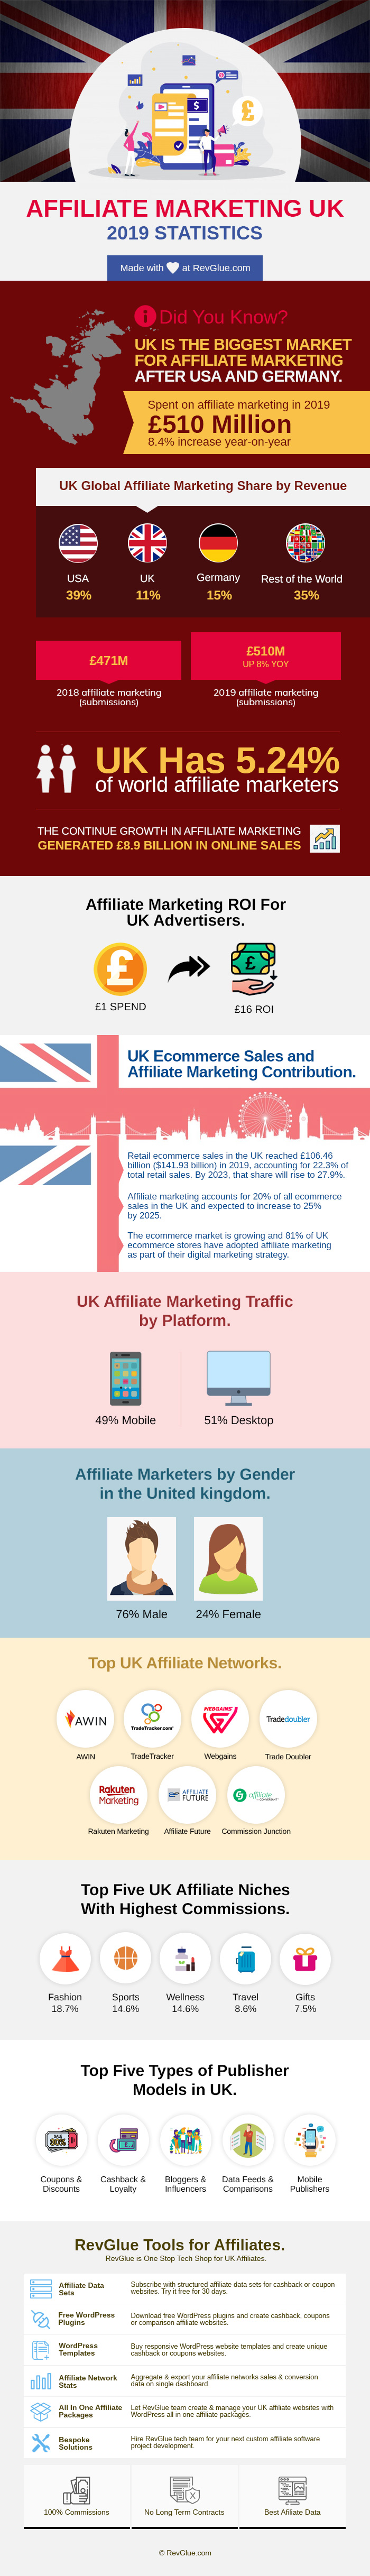 Affiliate Marketing 2019 UK stats infographic